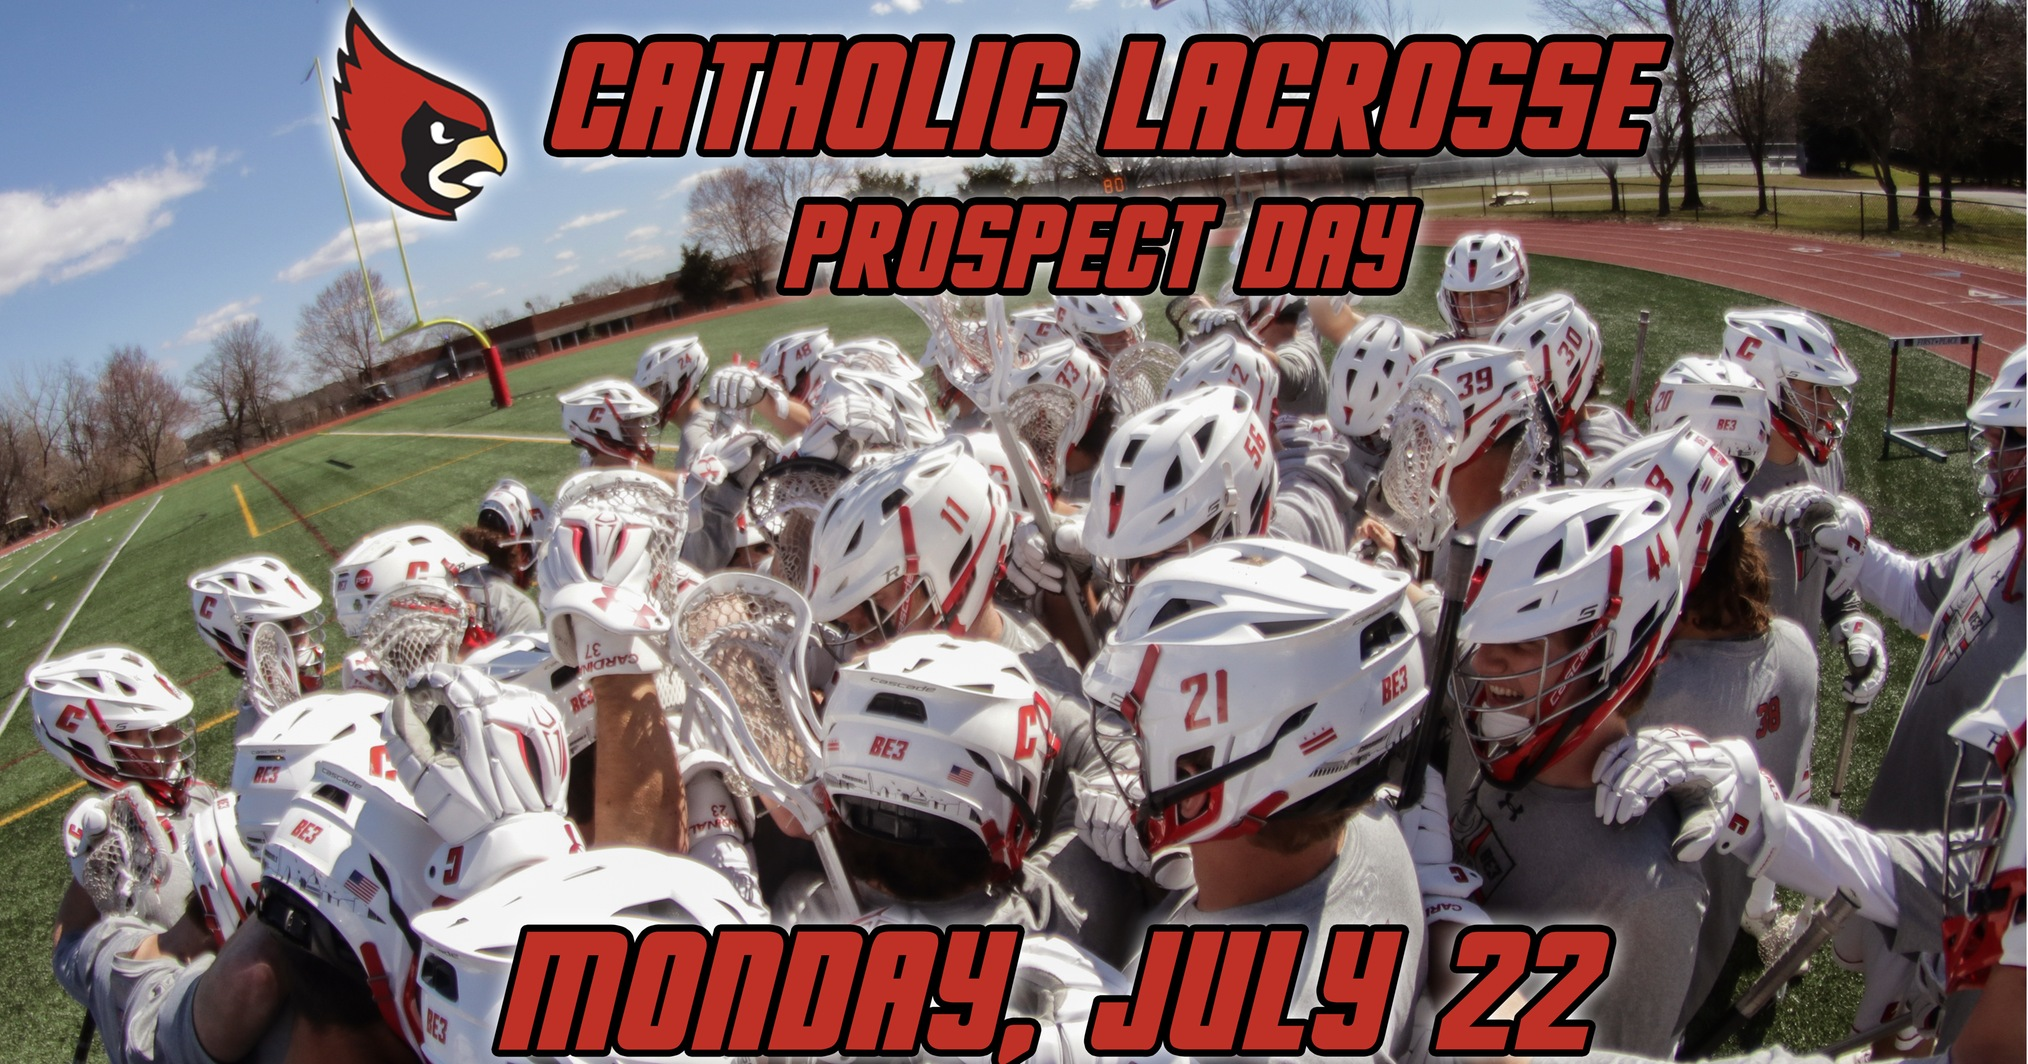 Cardinals to Hold Prospect Day on Monday, July 22